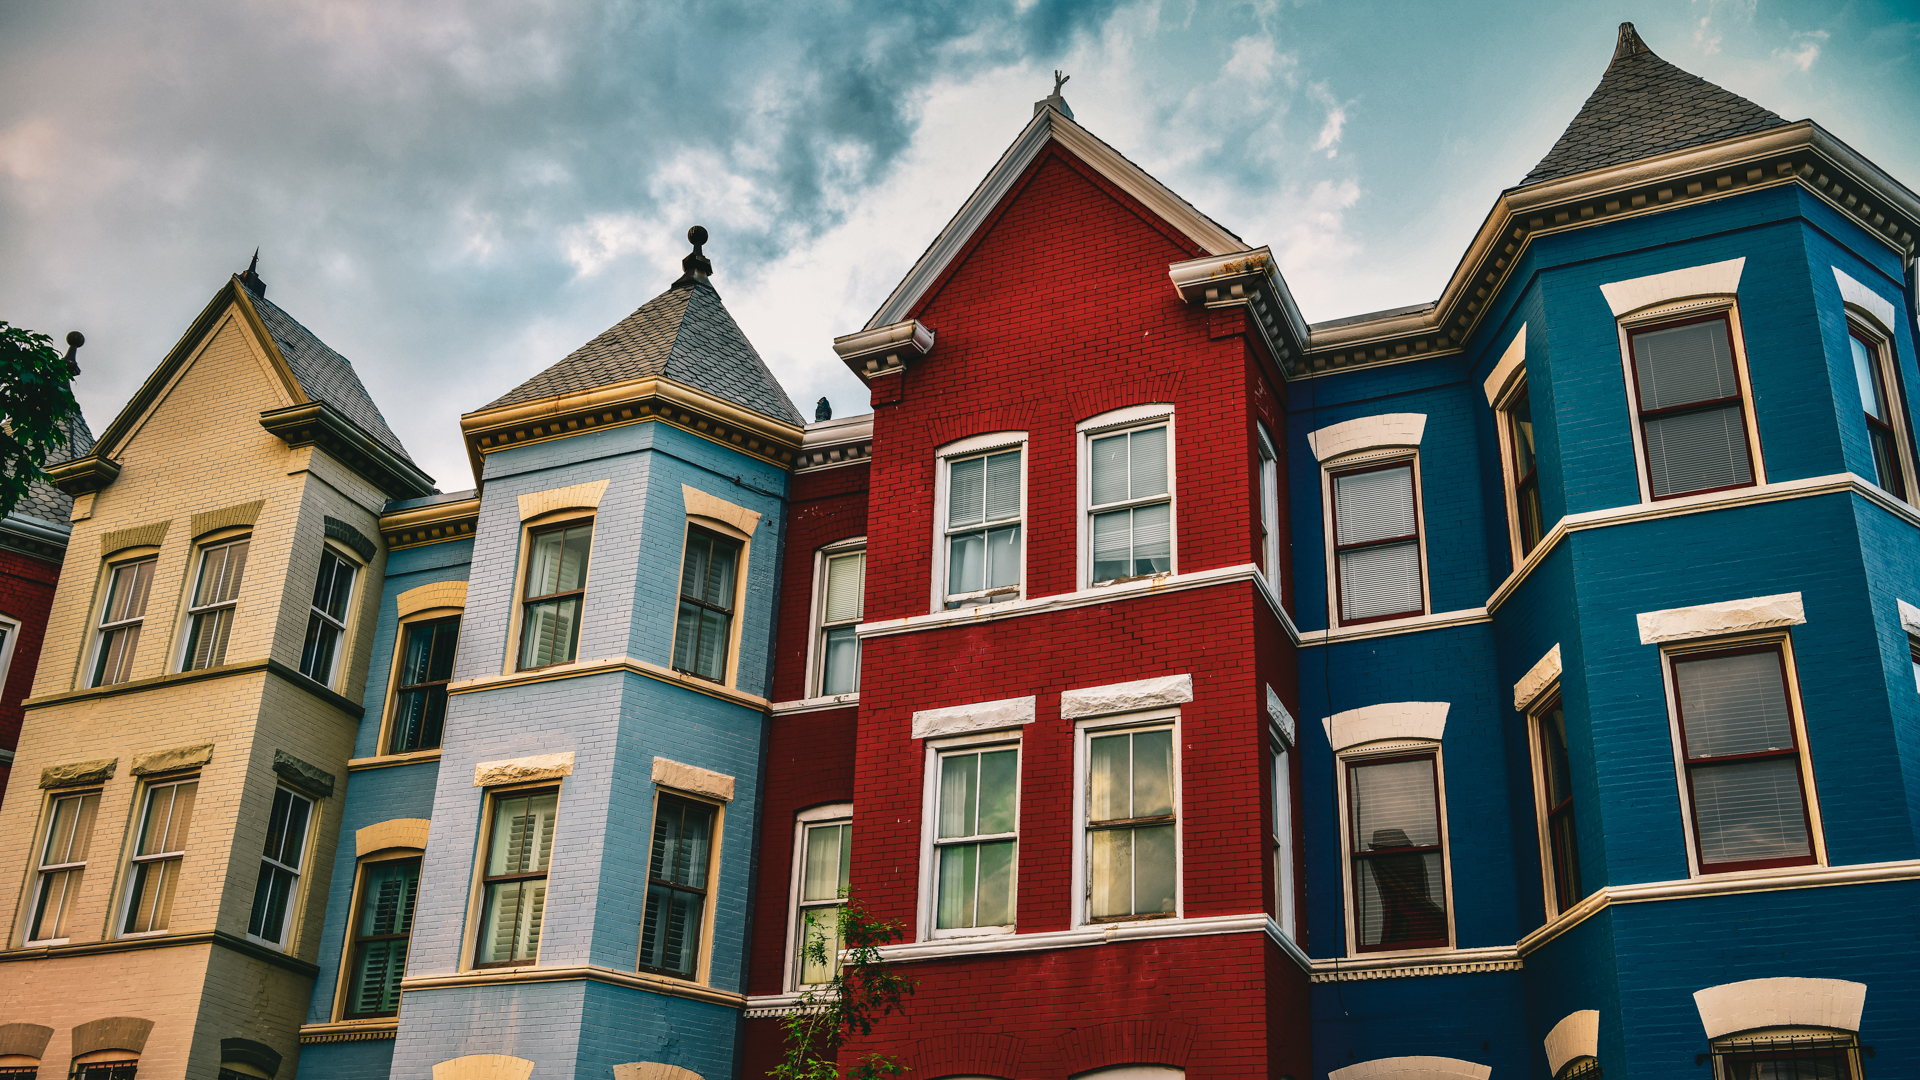 50 Cities Where It's Cheaper To Buy a Home Than Rent